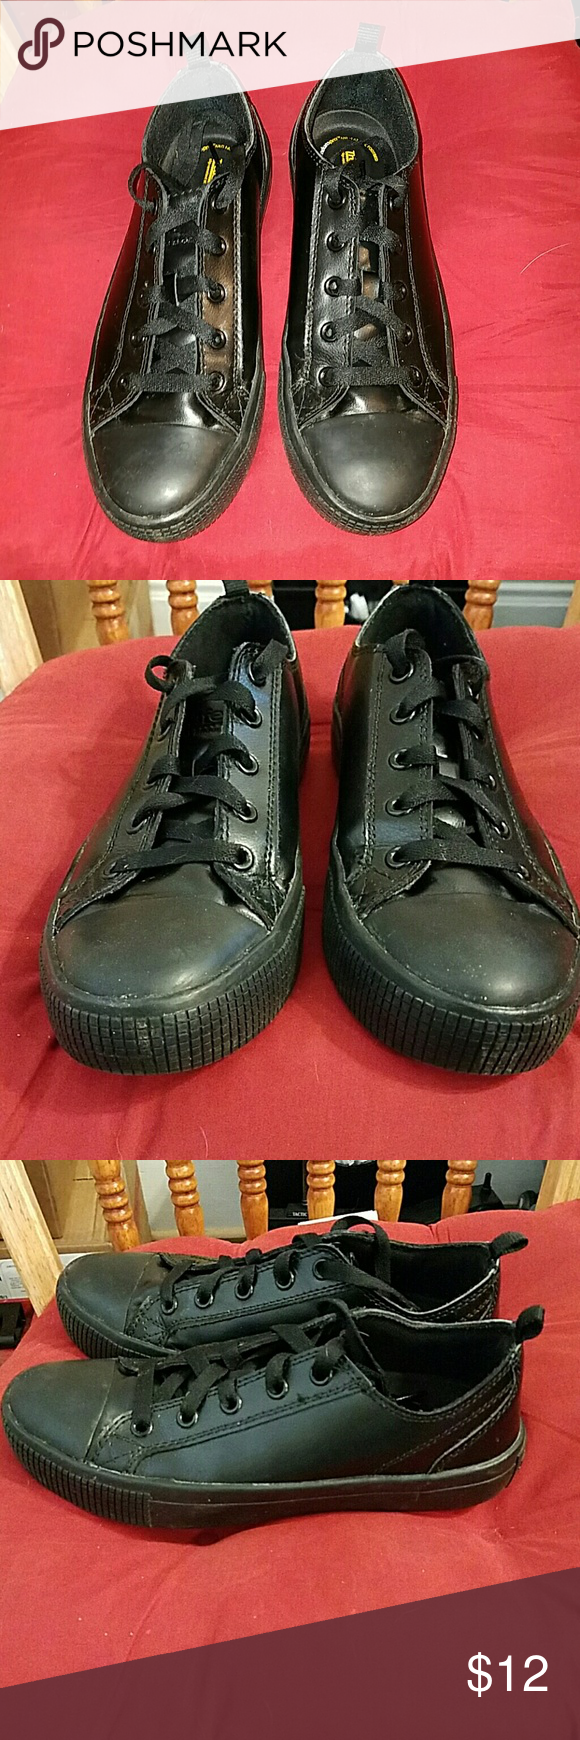 Converse Style Tredsafe Nonslip Shoes